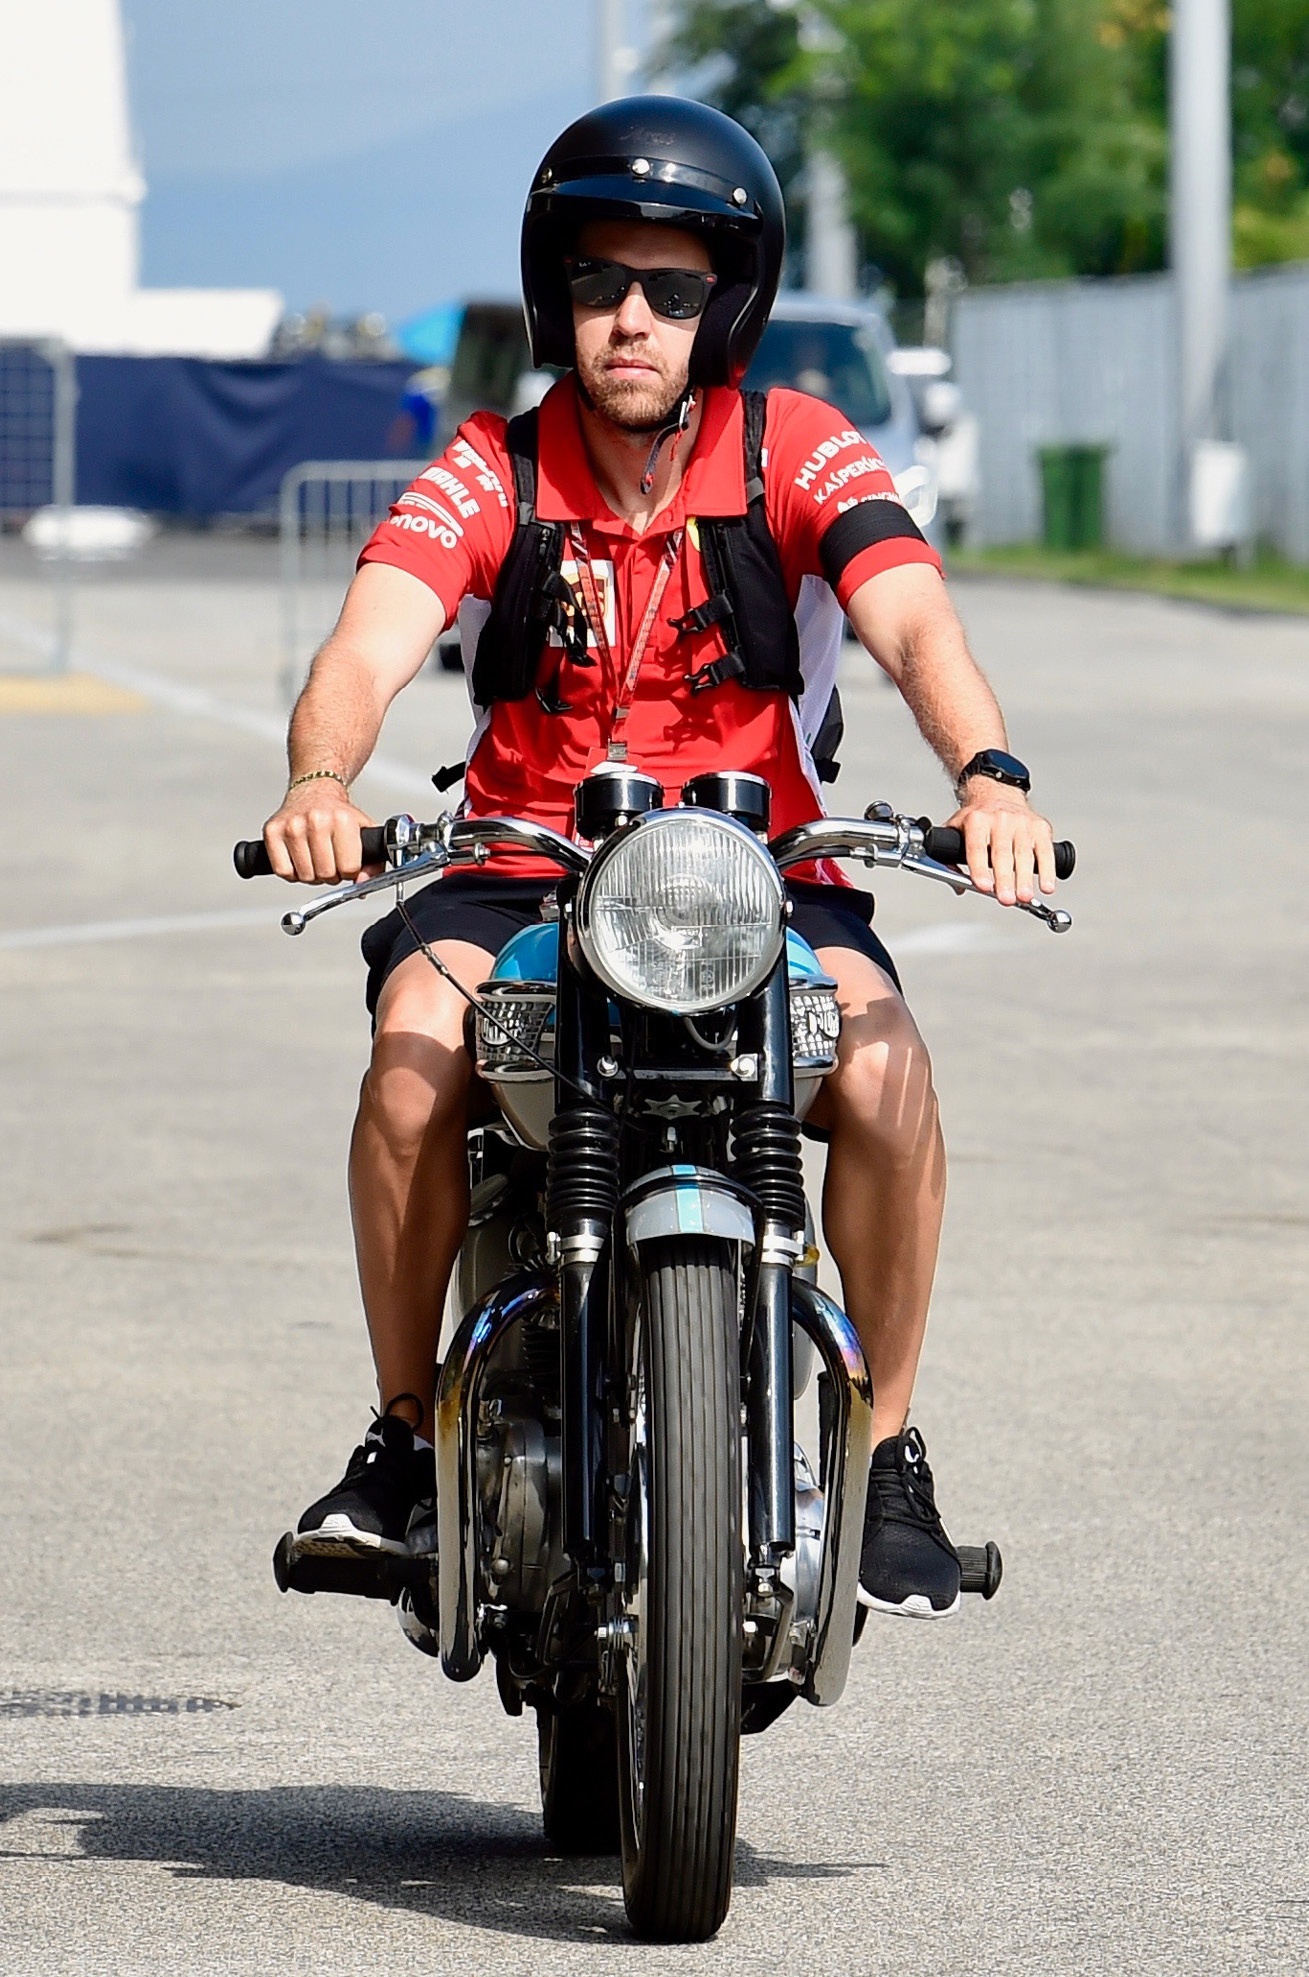 Vettel is an avid collector of classic motorcycles, particularly those from the 1970s